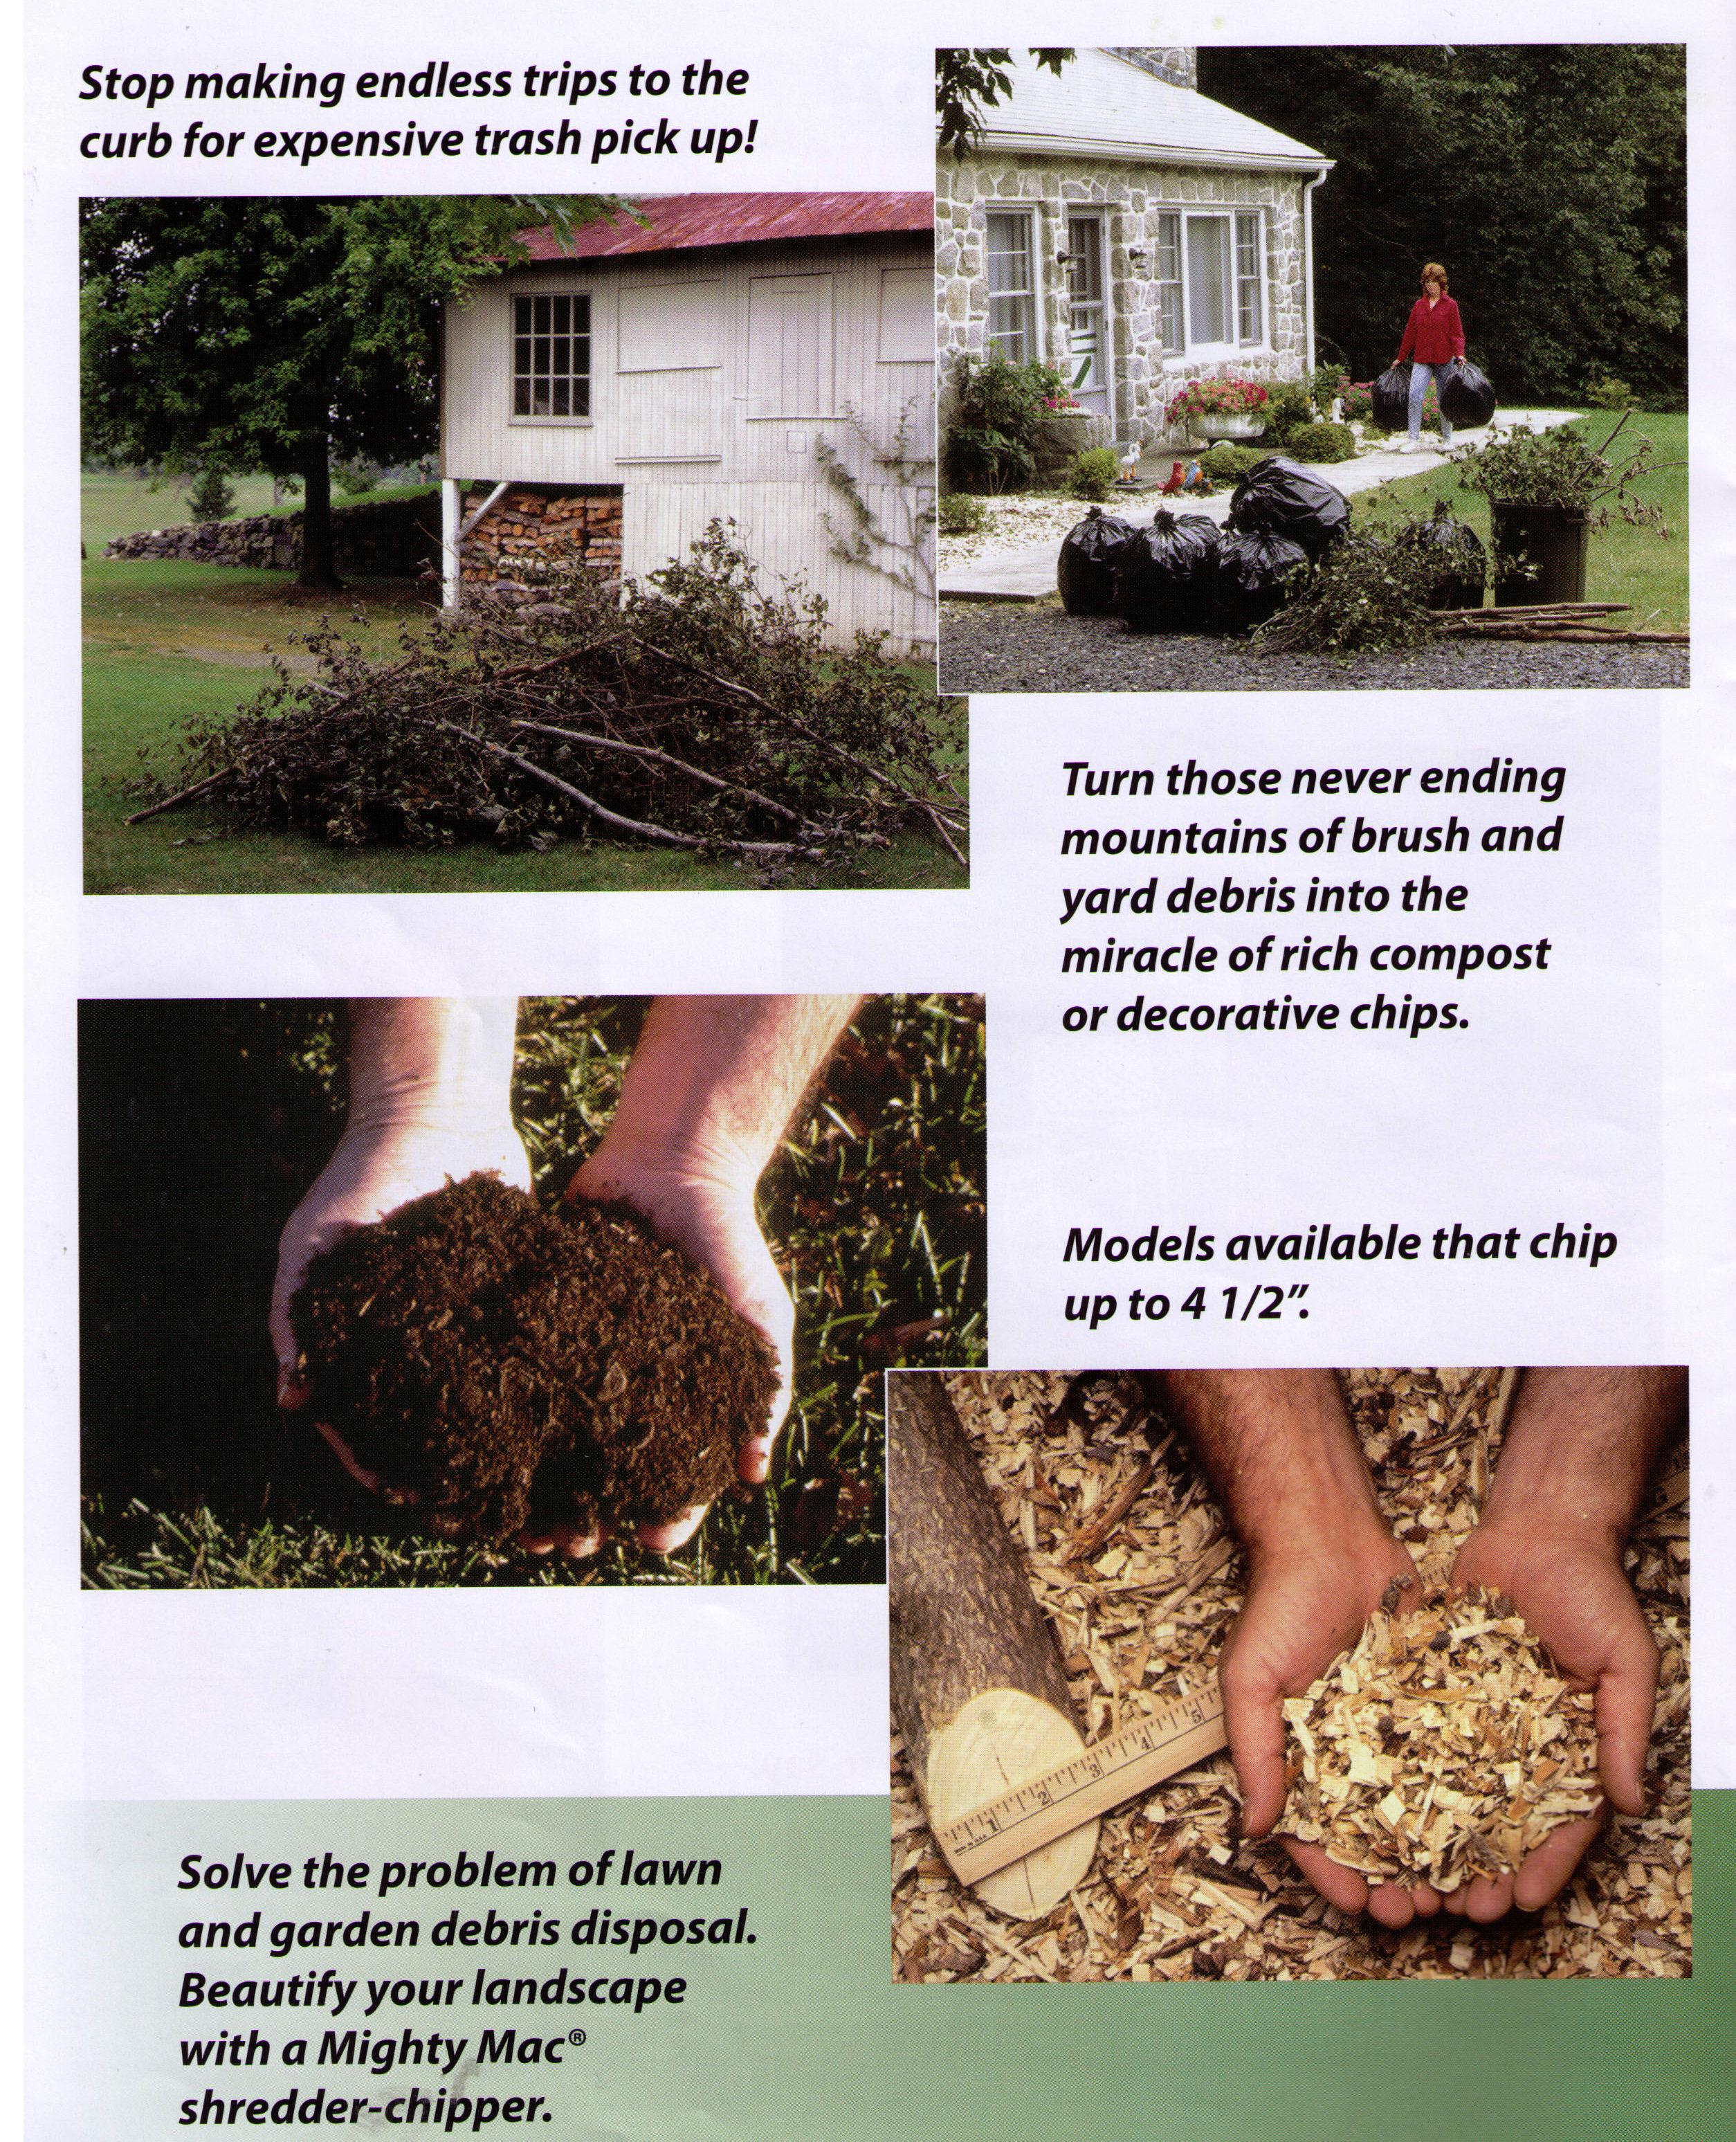 Models Are Chipper/Shredders, reduce materials to a chips or compost.